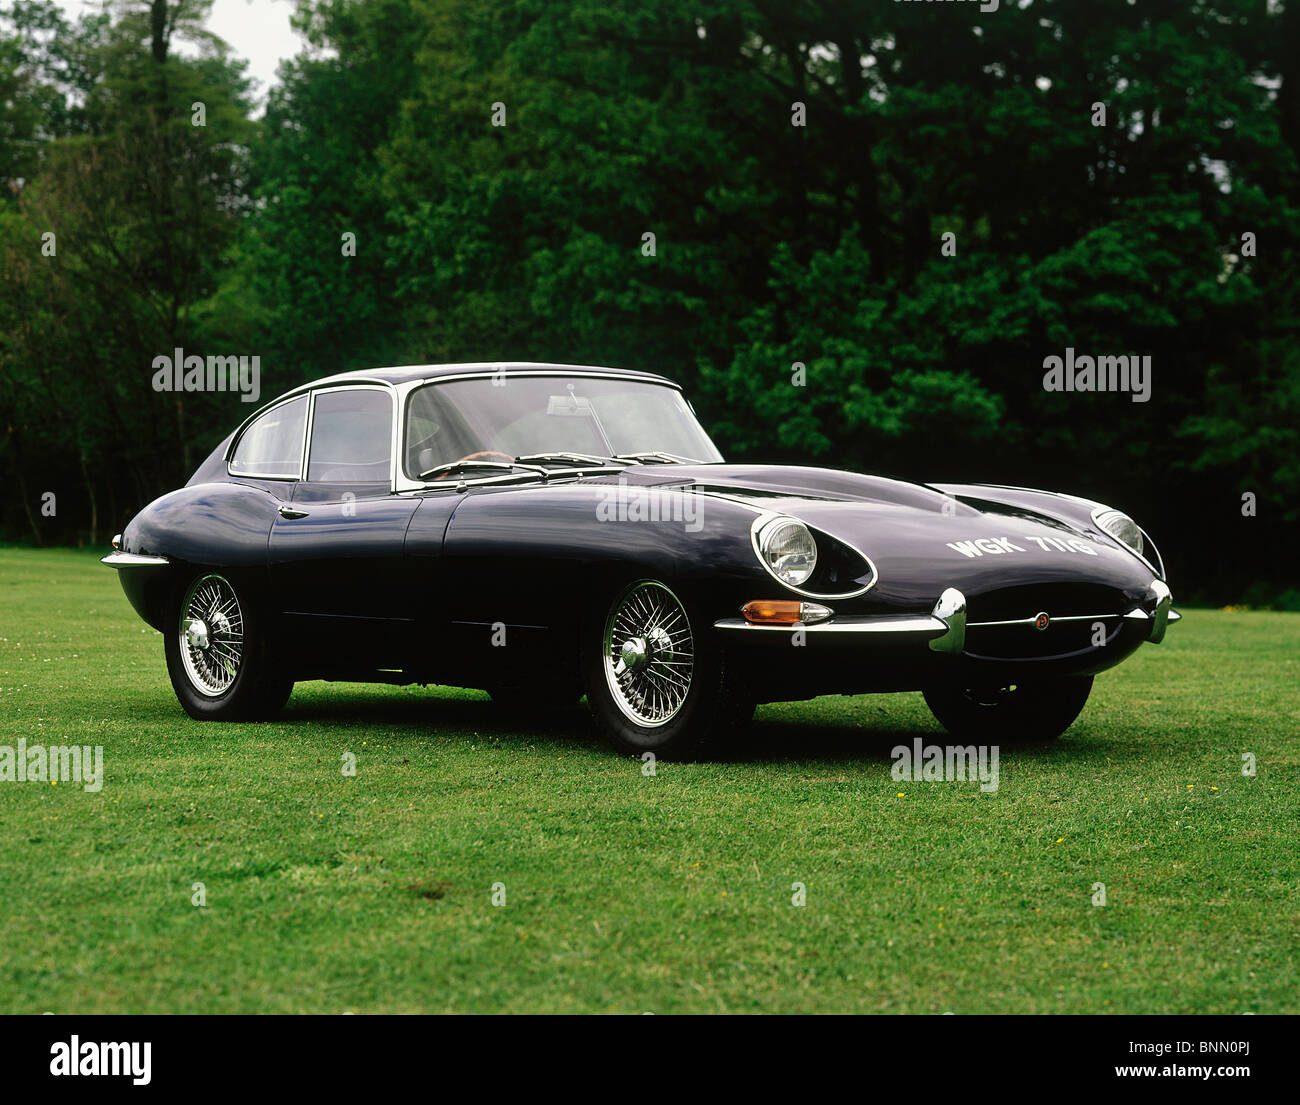 1968 Jaguar E type Series II 4.2 Fixed Head Coupe - Stock Image